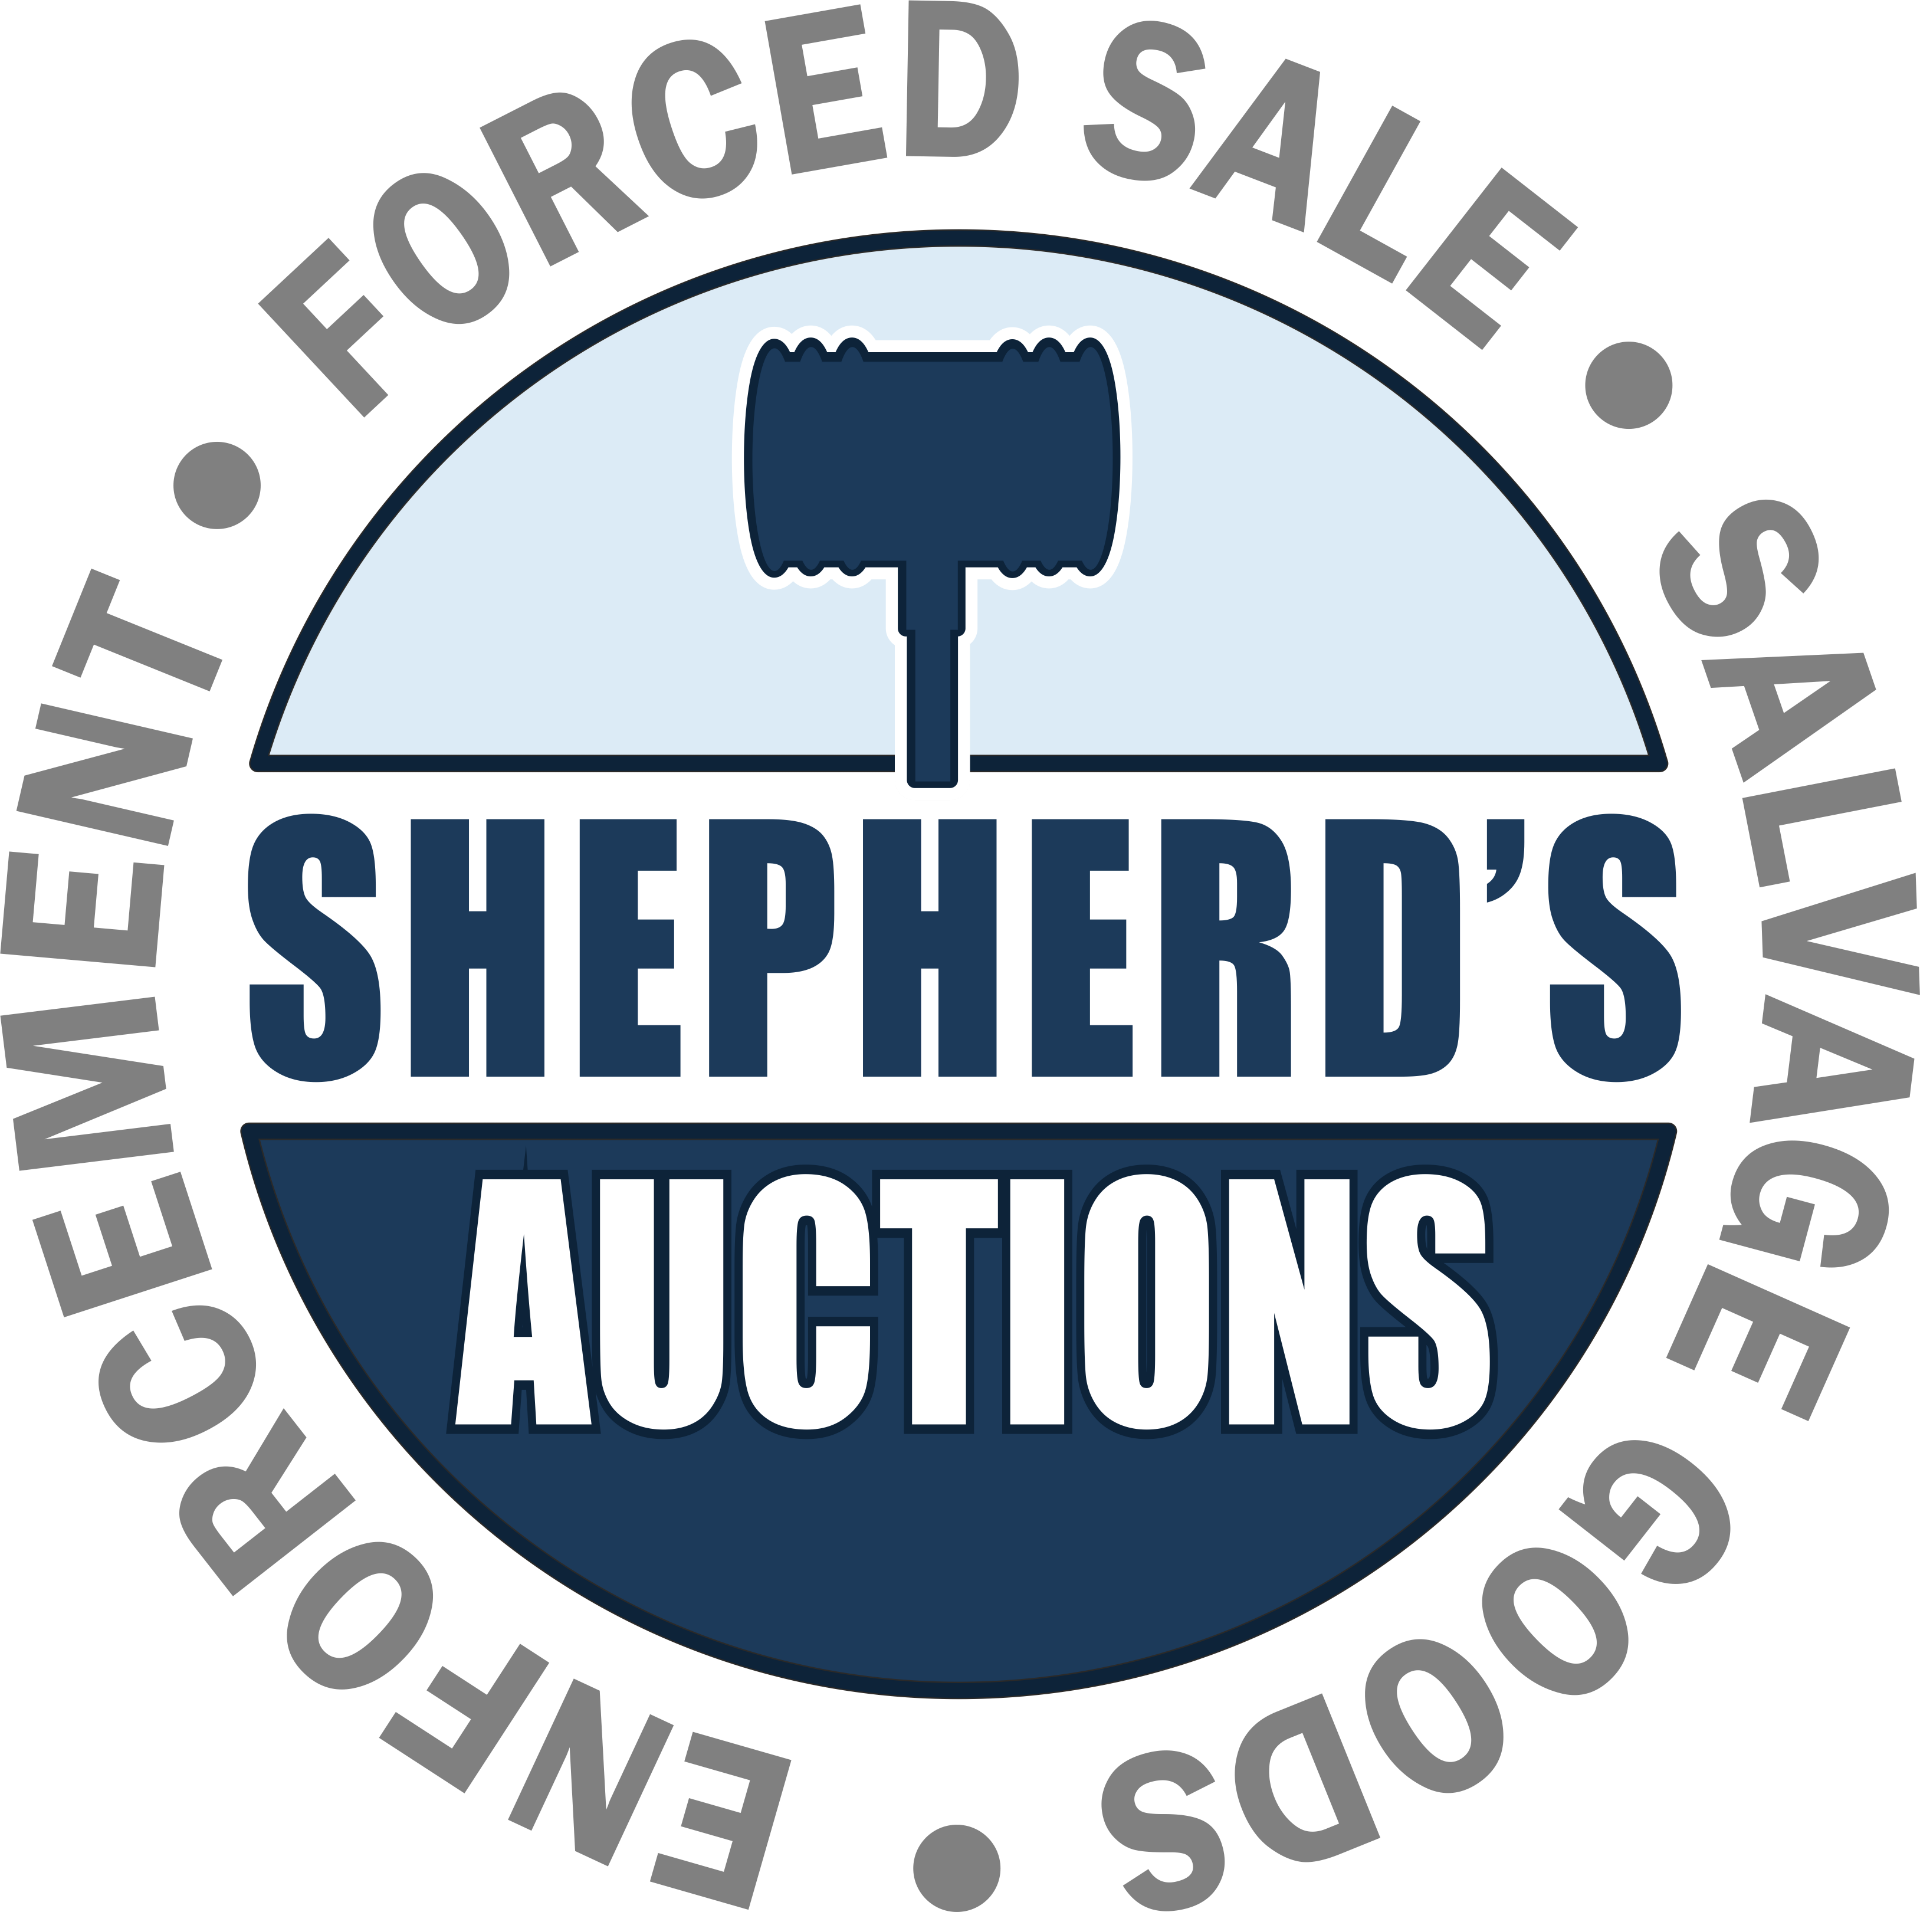 Lot 0 - Please Read Please note all lots in this auction are raw and completely unchecked and there is no